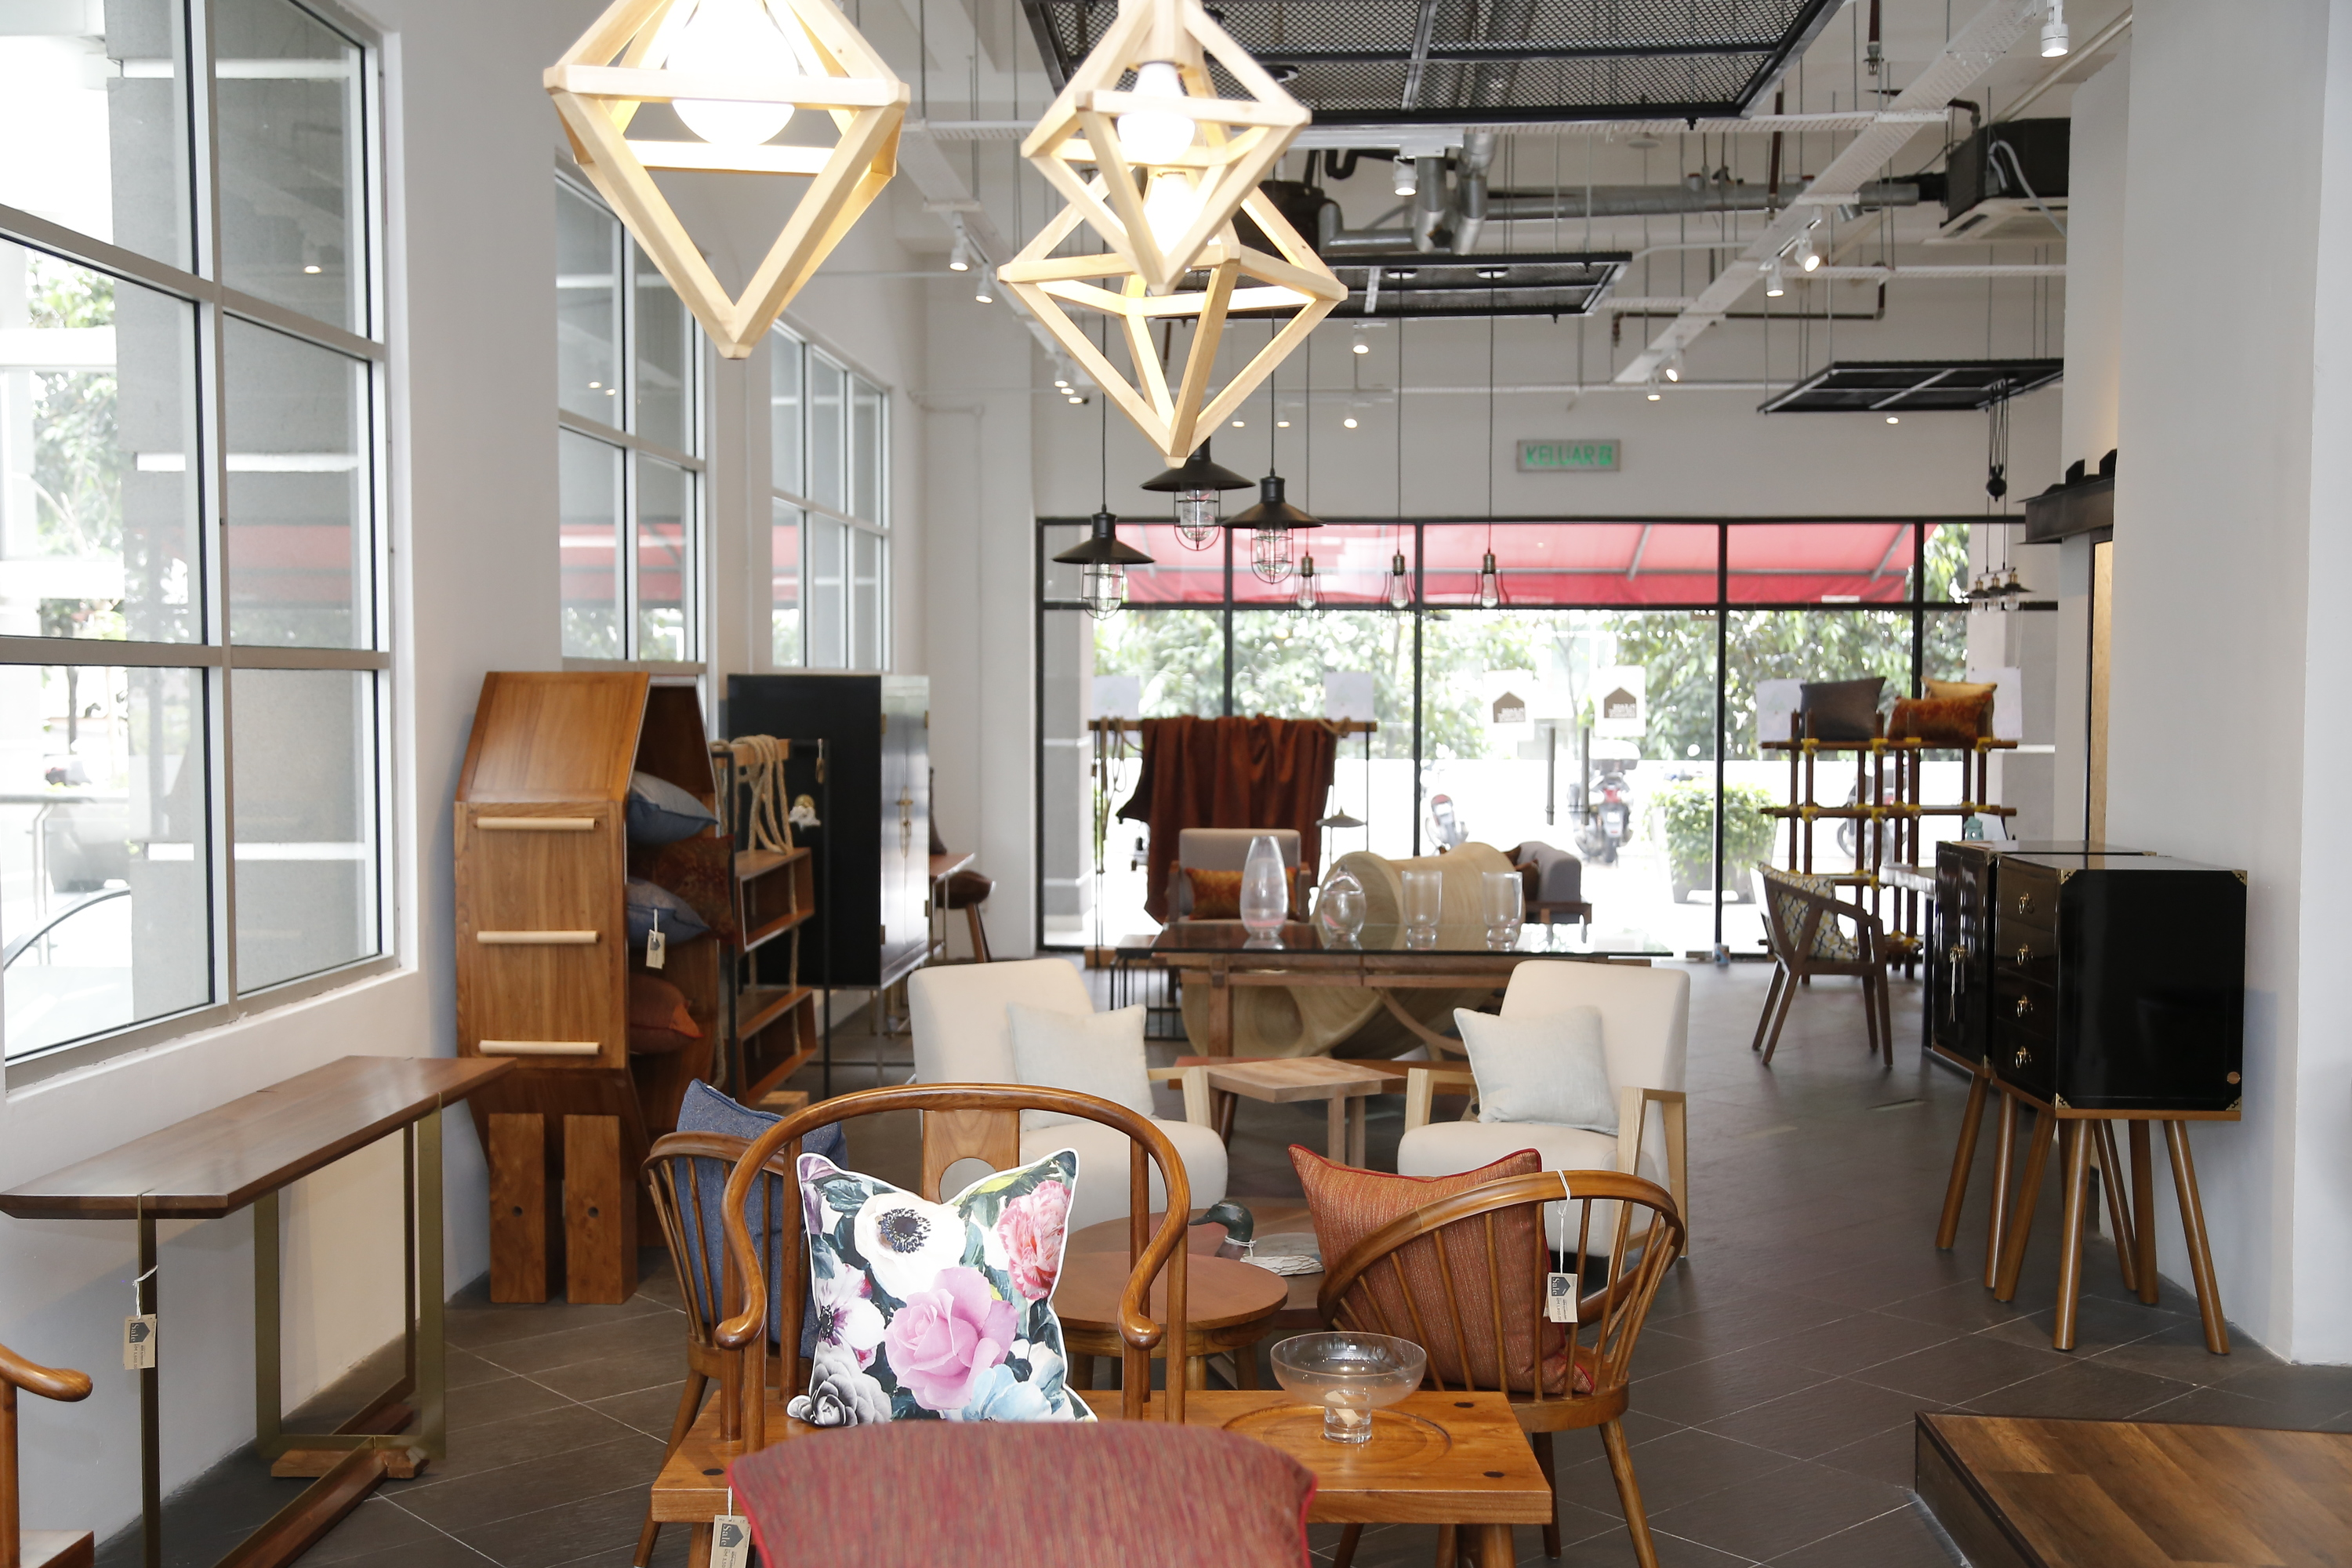 The best furniture and home decor stores in kl for Room decor shopping